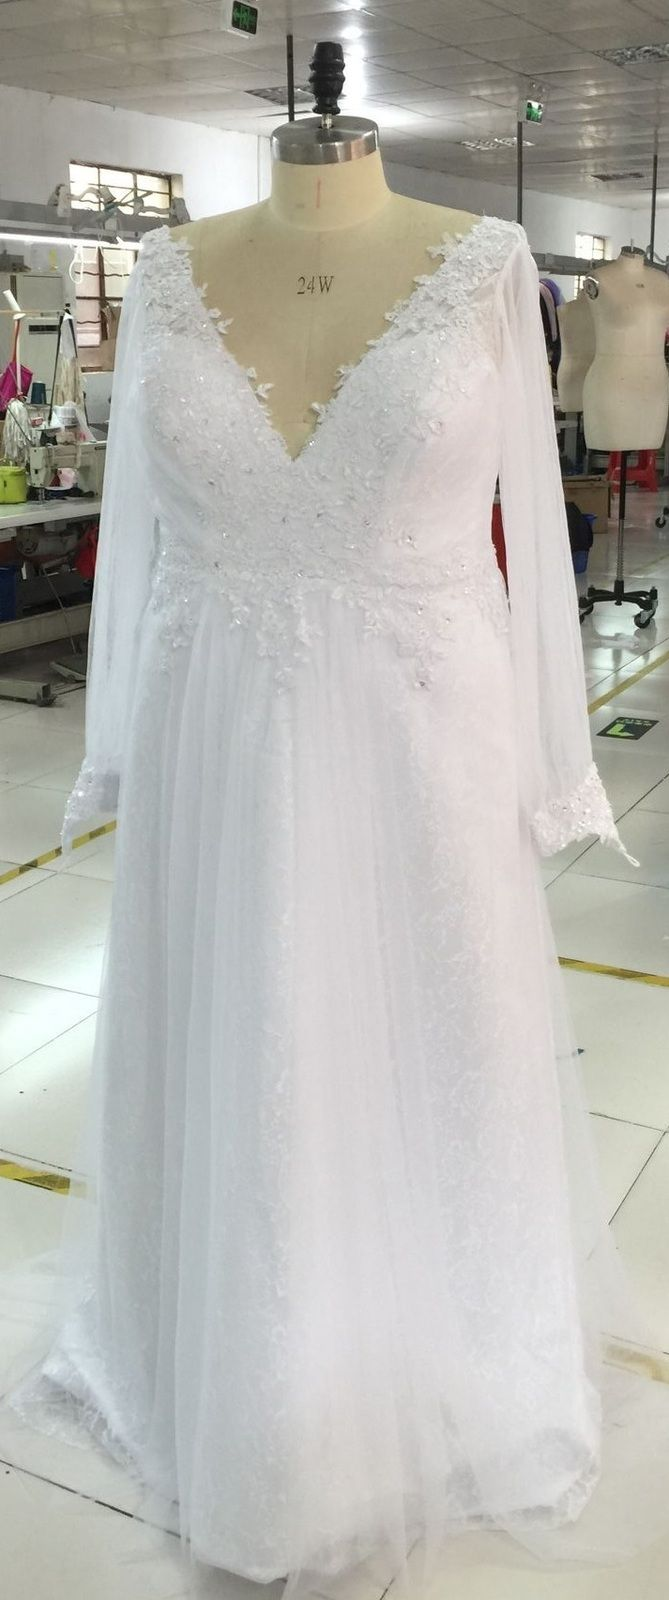 We make long sleeve plus size wedding dresses for all sizes.  This is one of our designs that was customized for a particular client.  We can produce custom #weddingdresses for you too.  Contact us for more info.